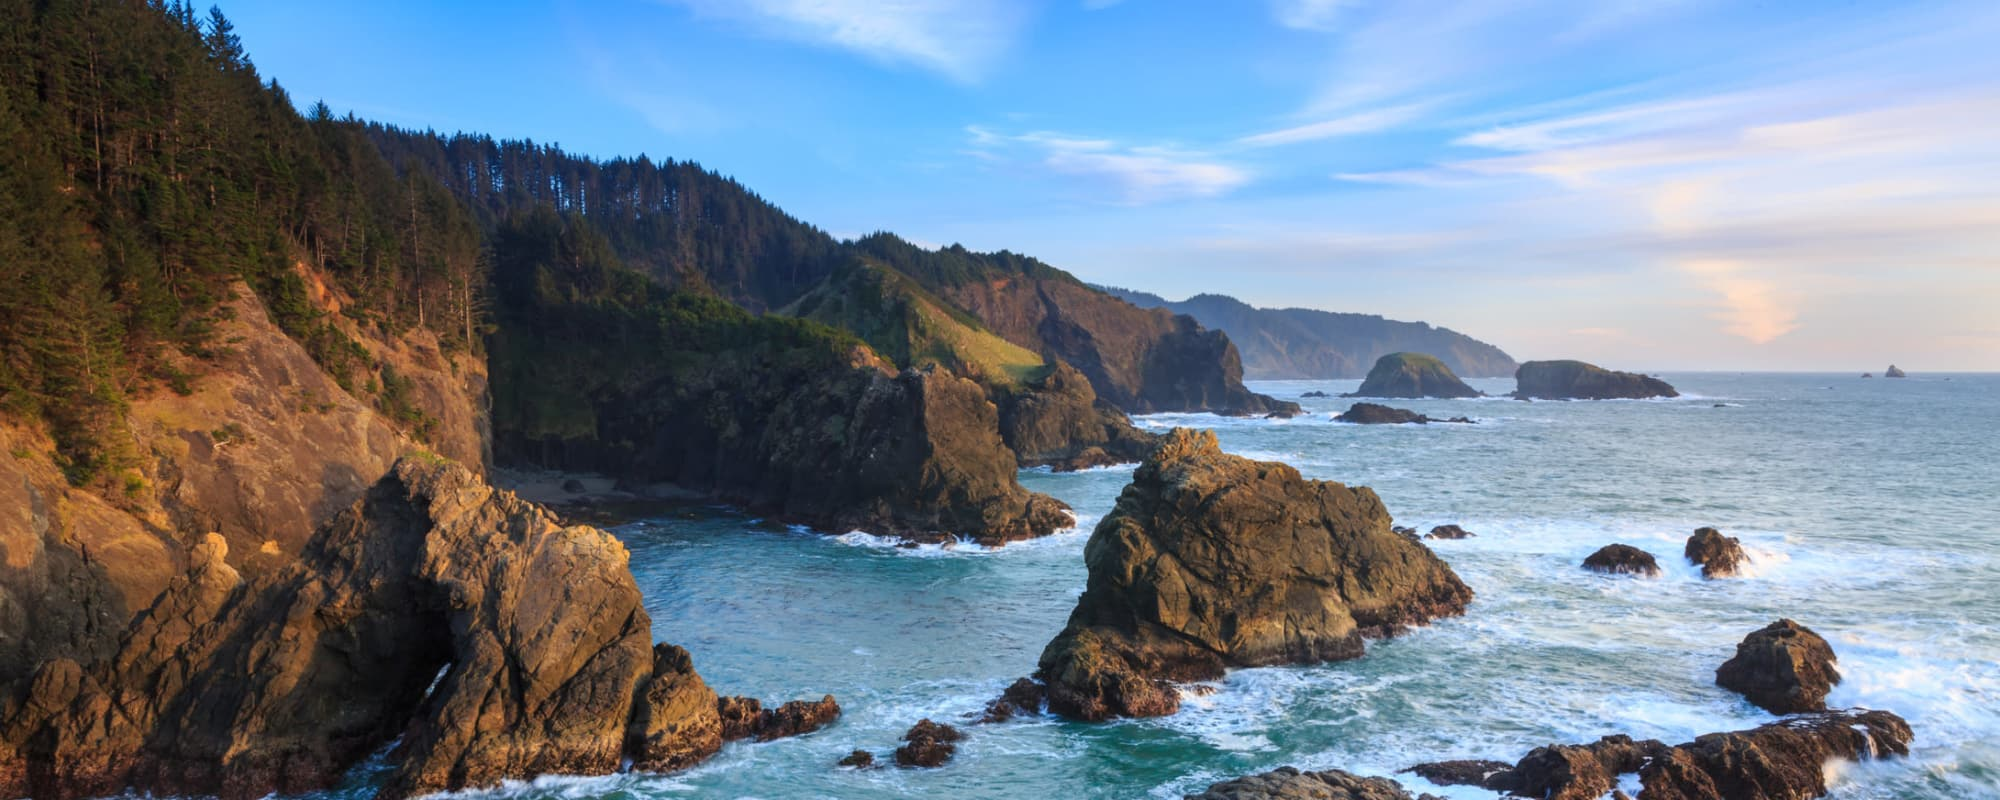 Contact Sea View Senior Living Community in Brookings, Oregon